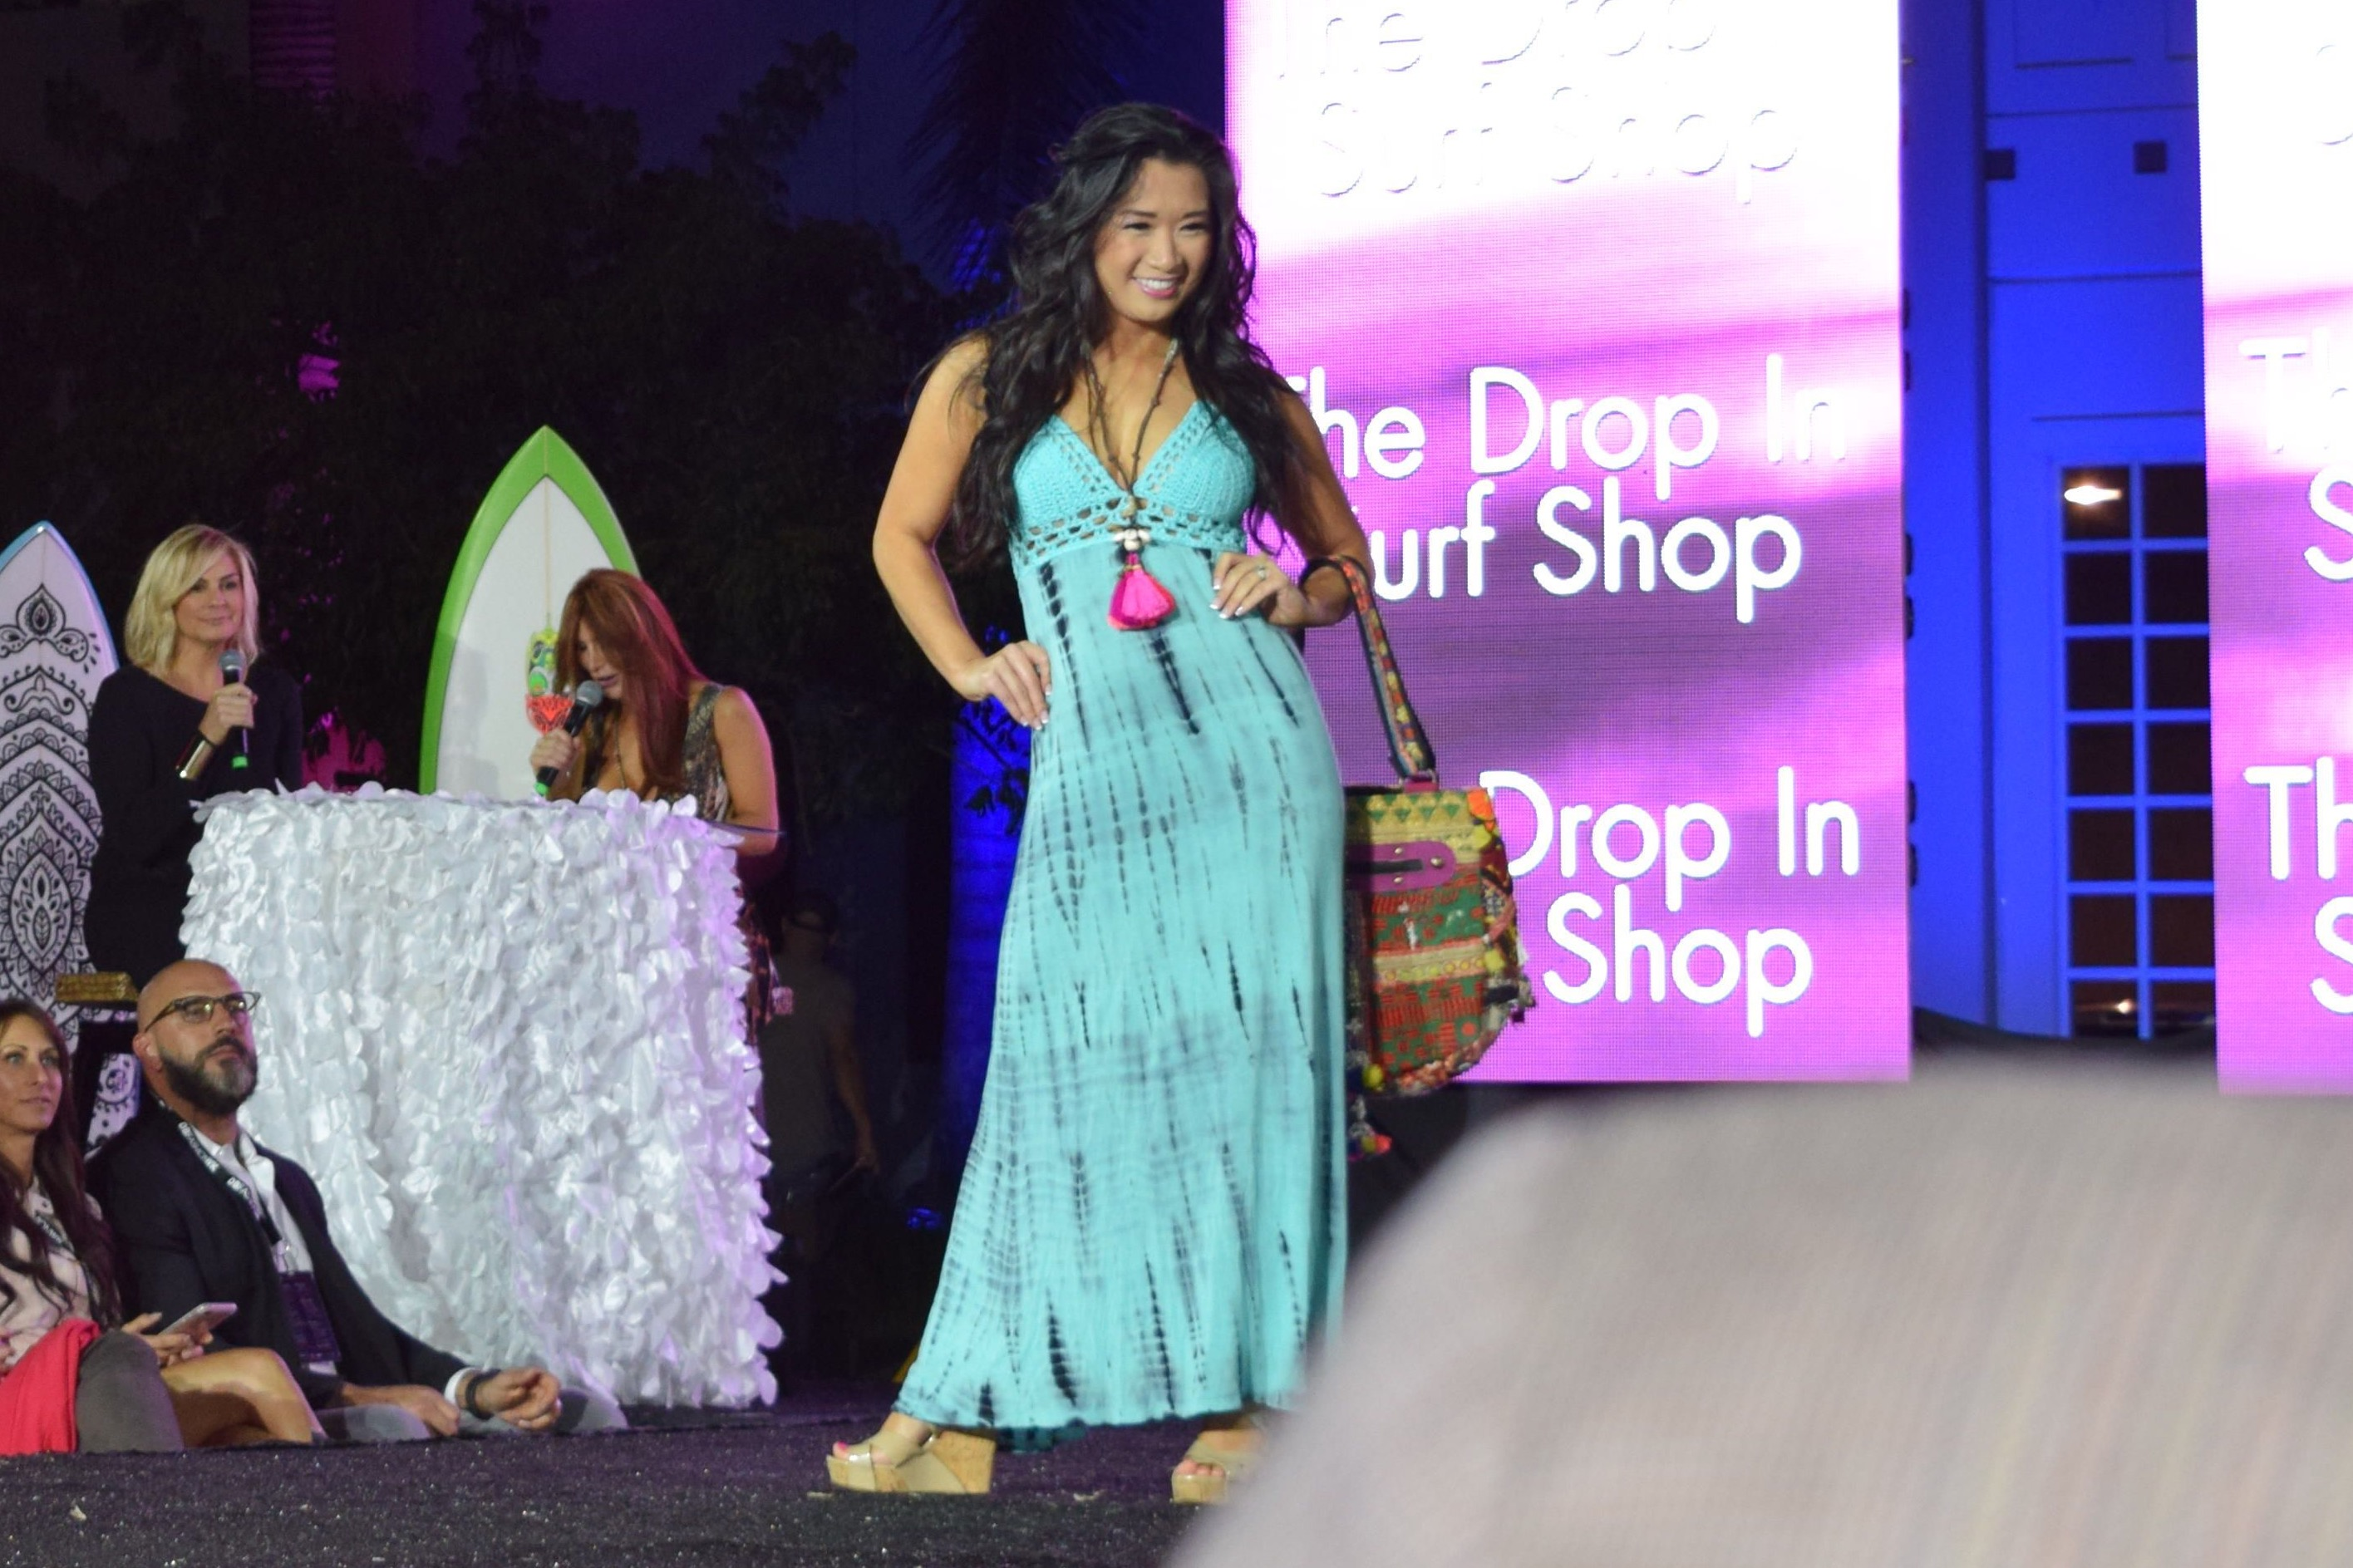 Delray Fashion Week-Swim & Surf Show with The Drop In Surf Shop